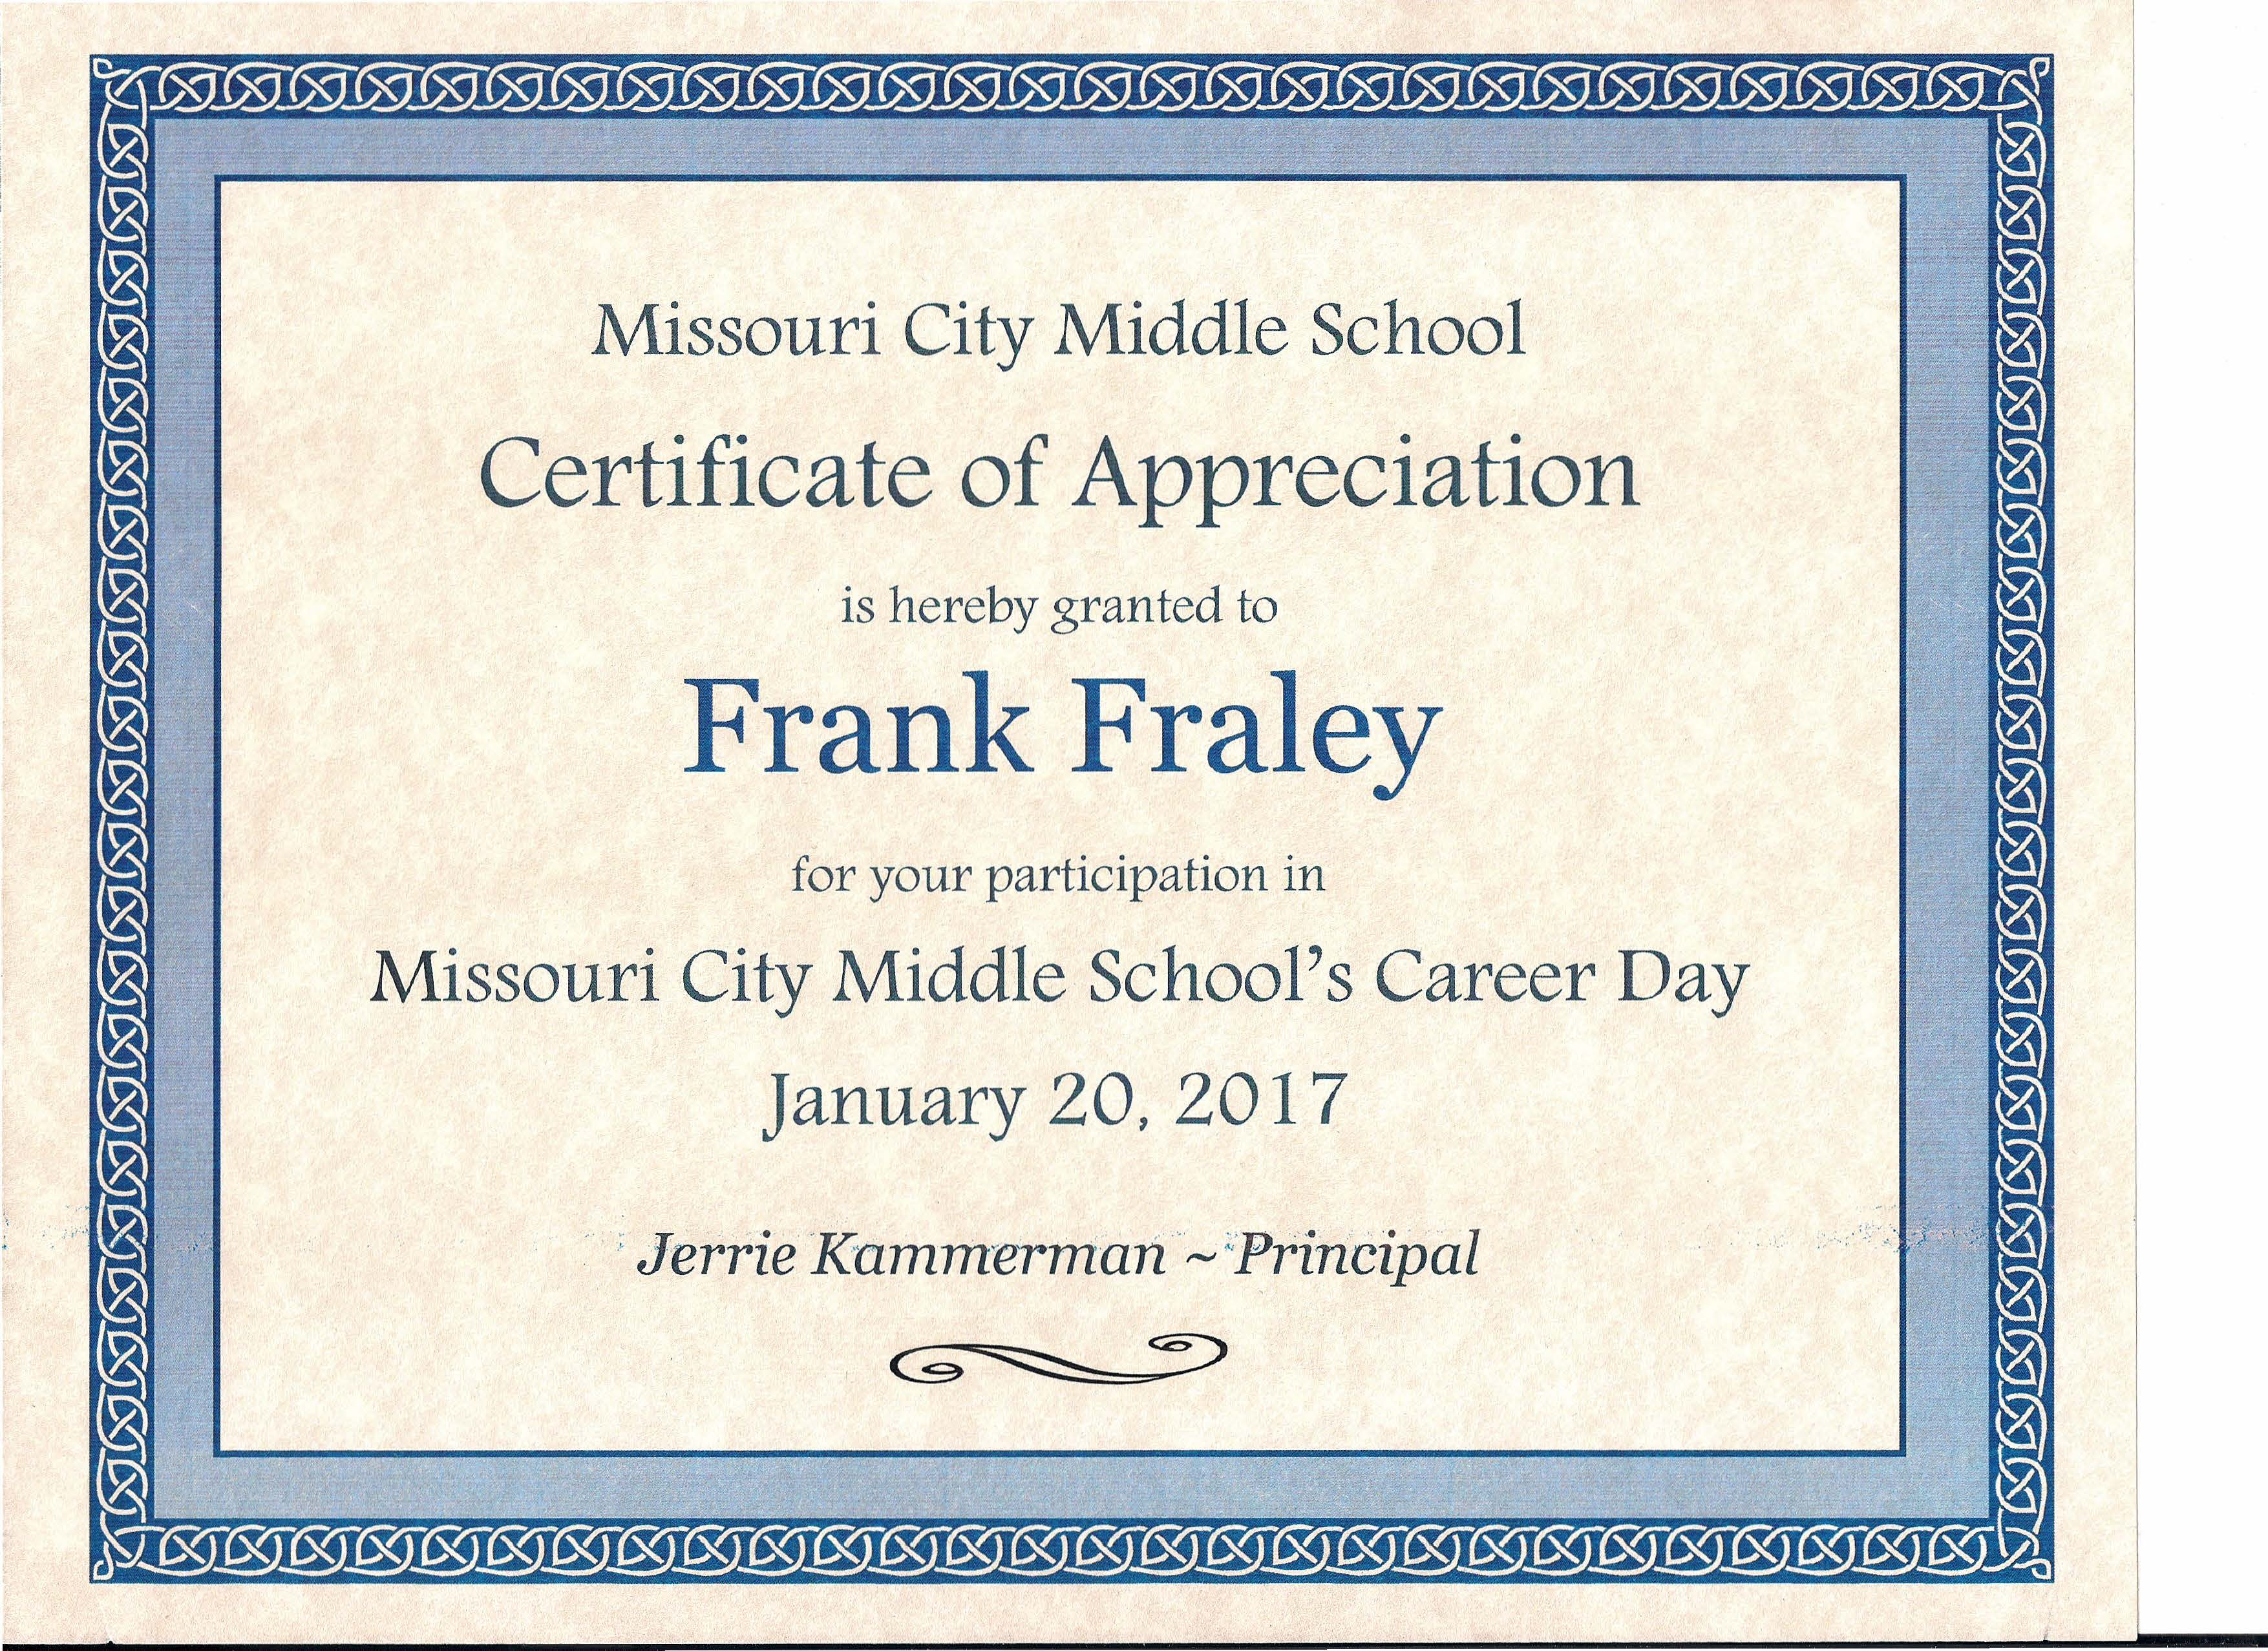 Gallery elect frank fraley for judge of the 240th district court missouri city middle school certificate of appreciation yadclub Image collections